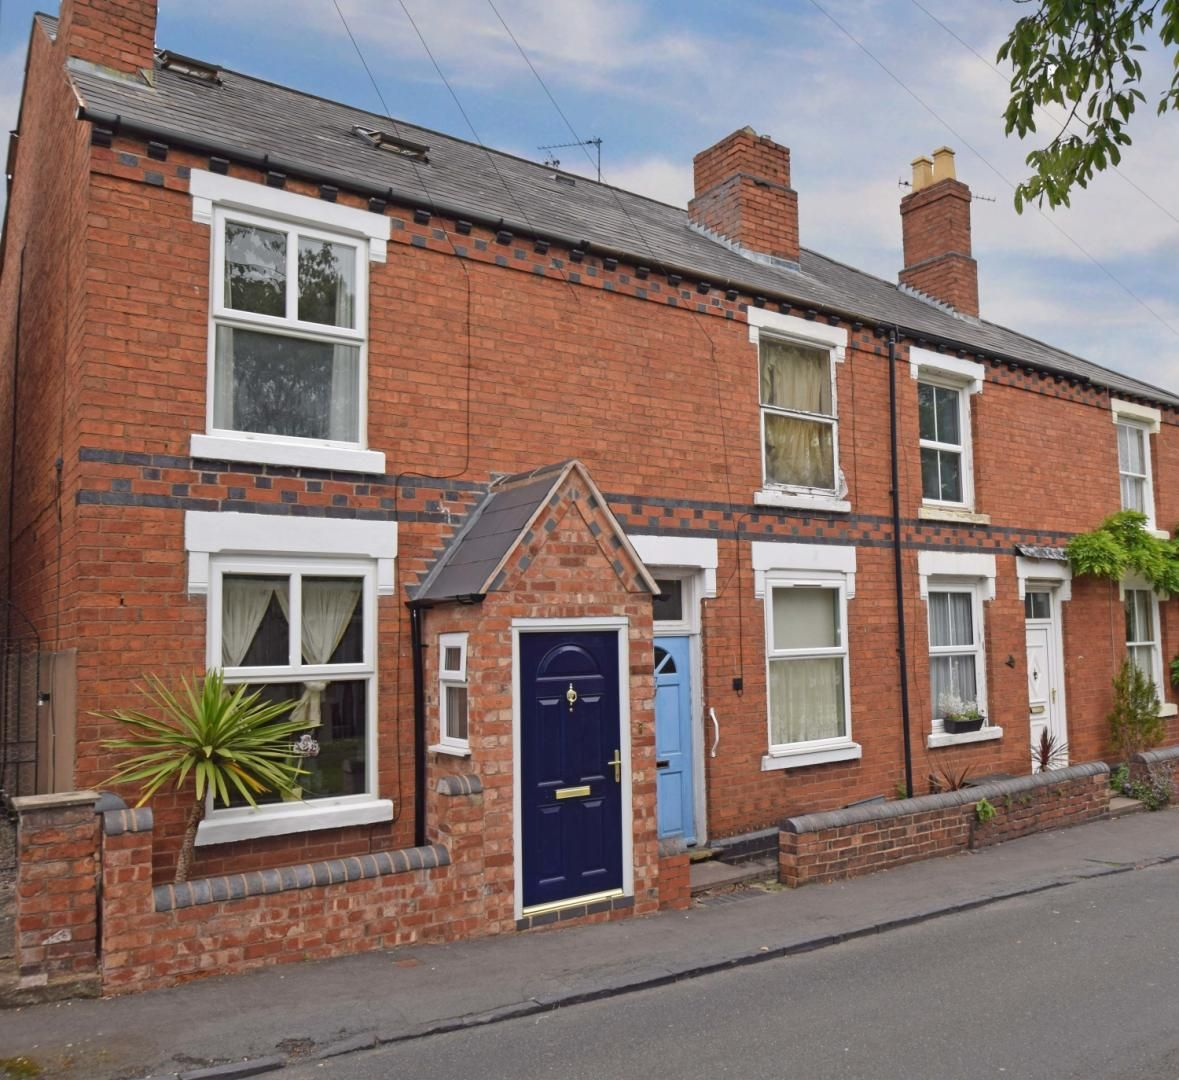 2 bed terraced for sale in Hall Street, Oldswinford - Property Image 1